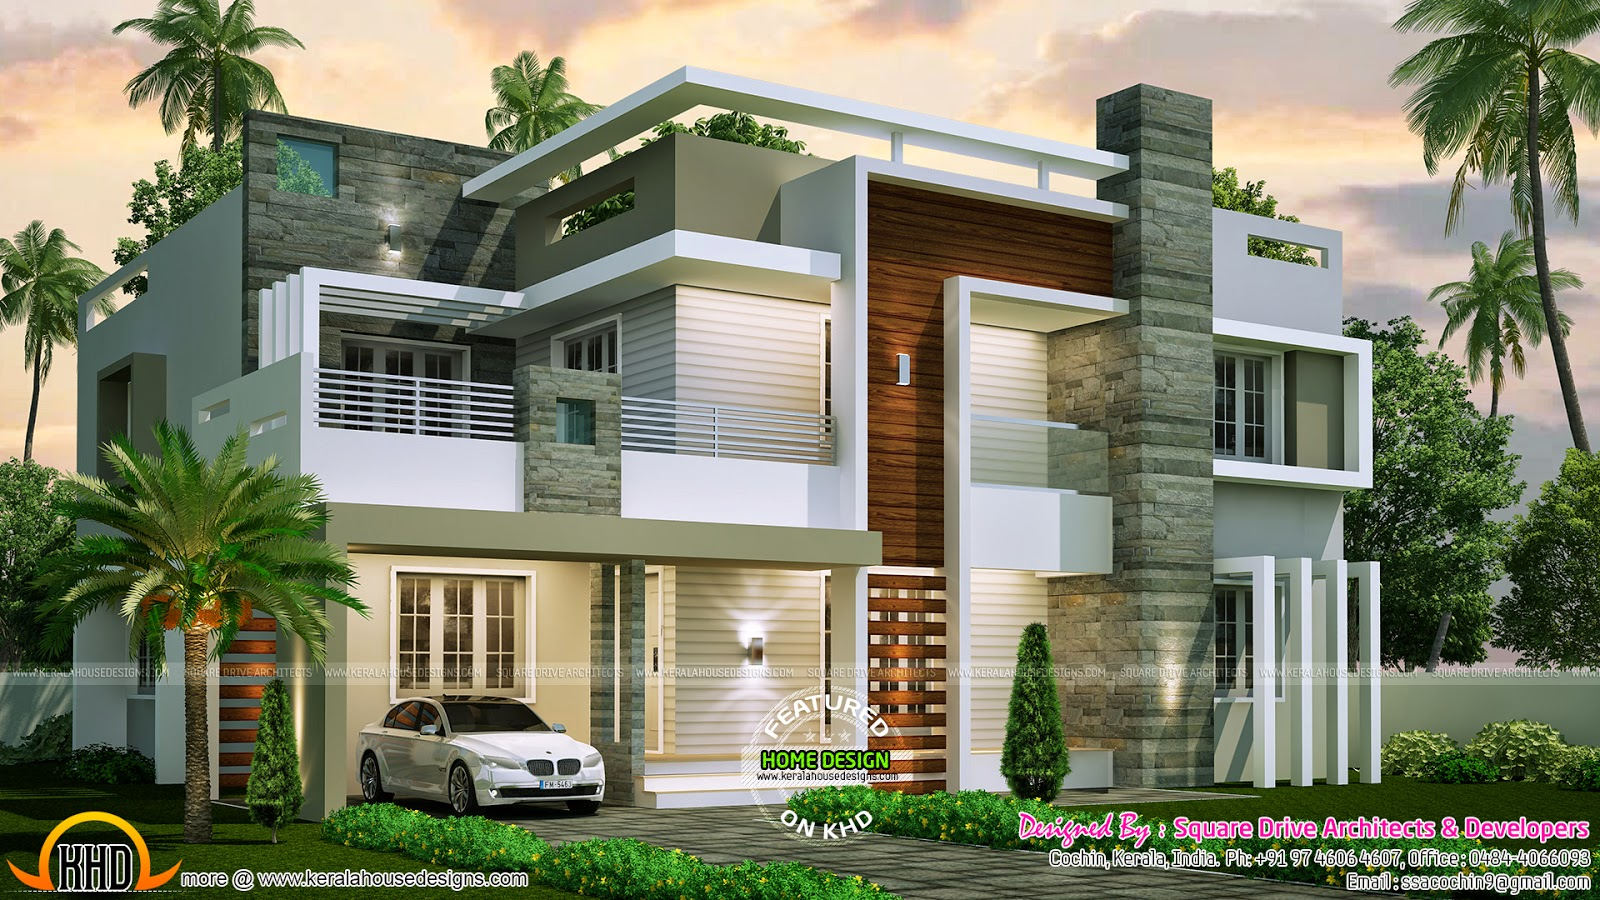 4 bedroom contemporary home design kerala home design and floor plans 4 bedroom modern house plans